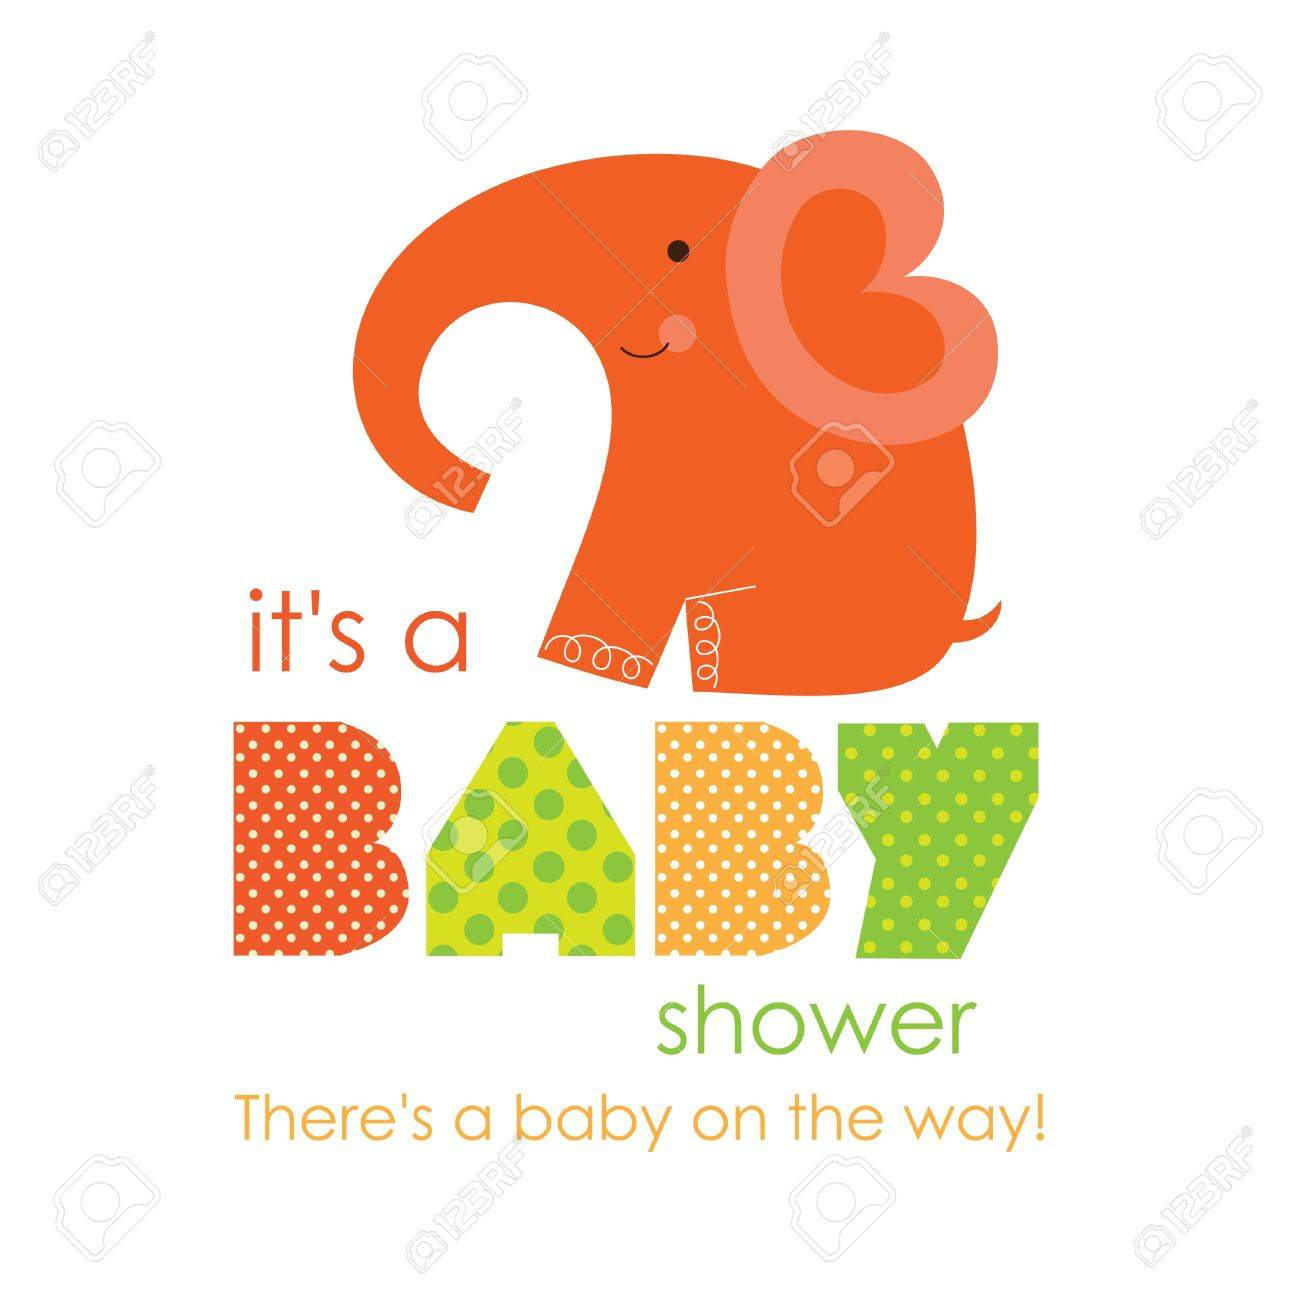 8 485 baby elephant stock vector illustration and royalty free